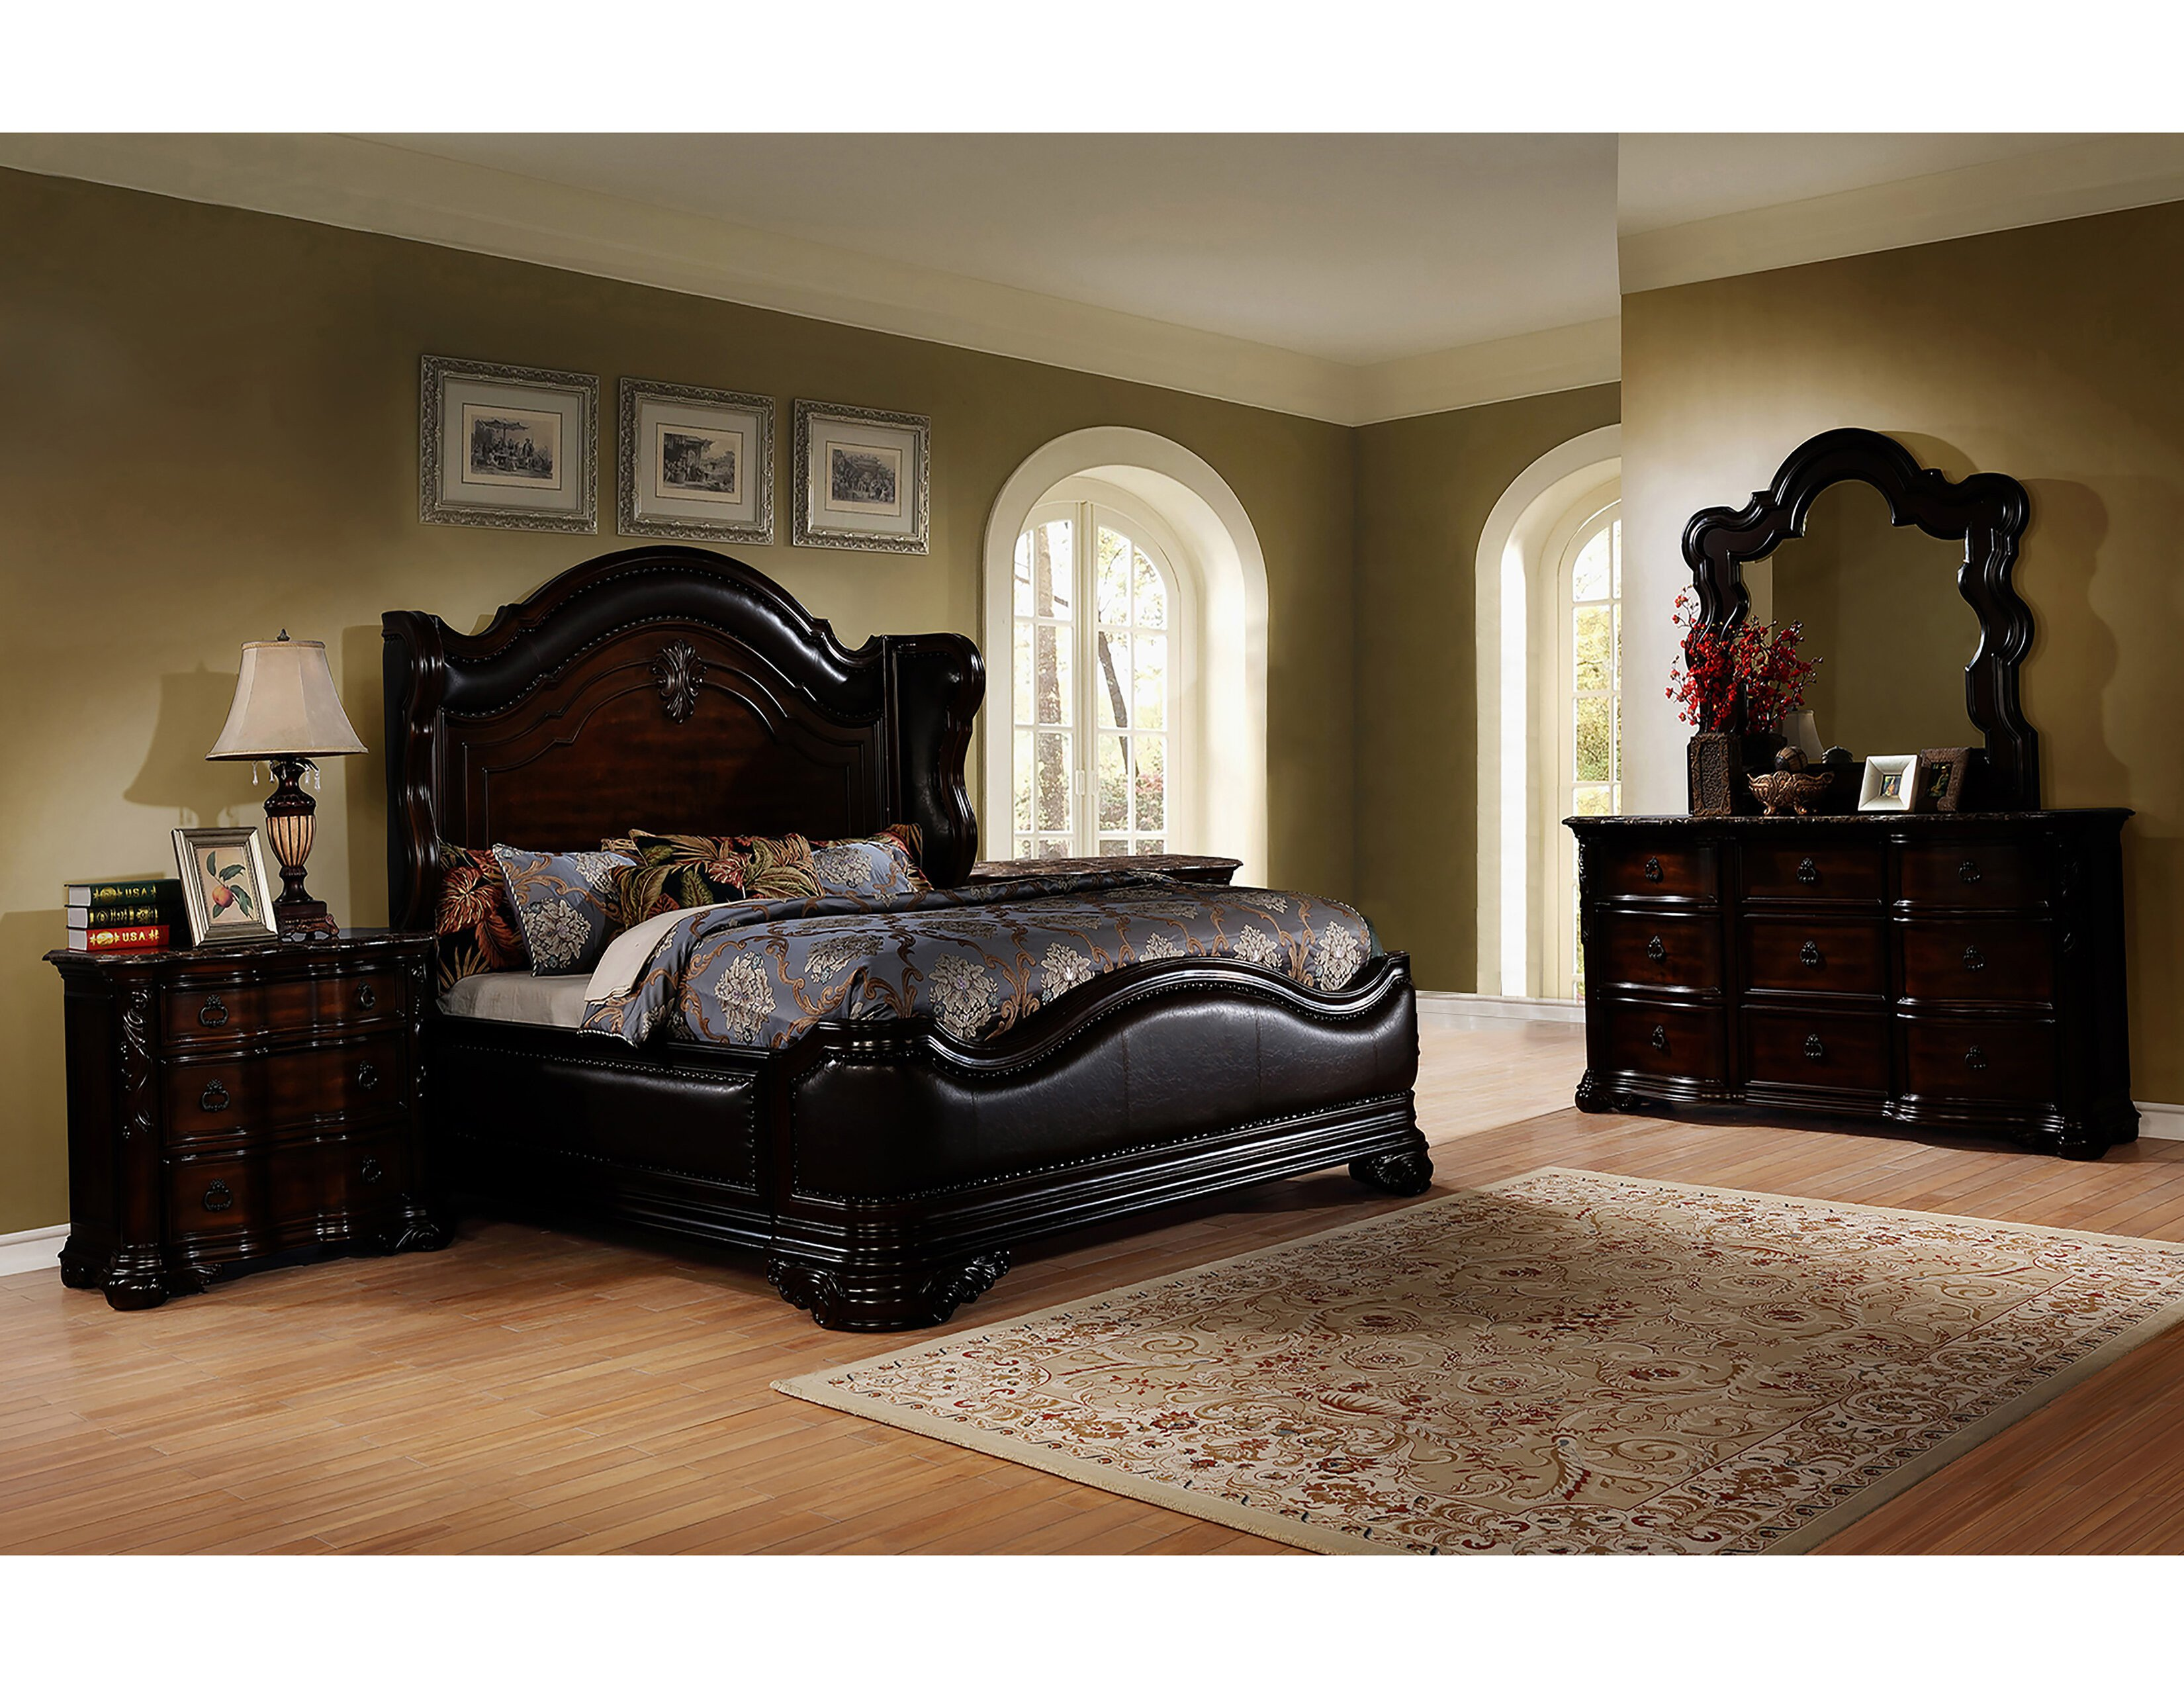 Queen Bedroom Set with Storage Drawers Awesome Ayan Standard 5 Piece Bedroom Set